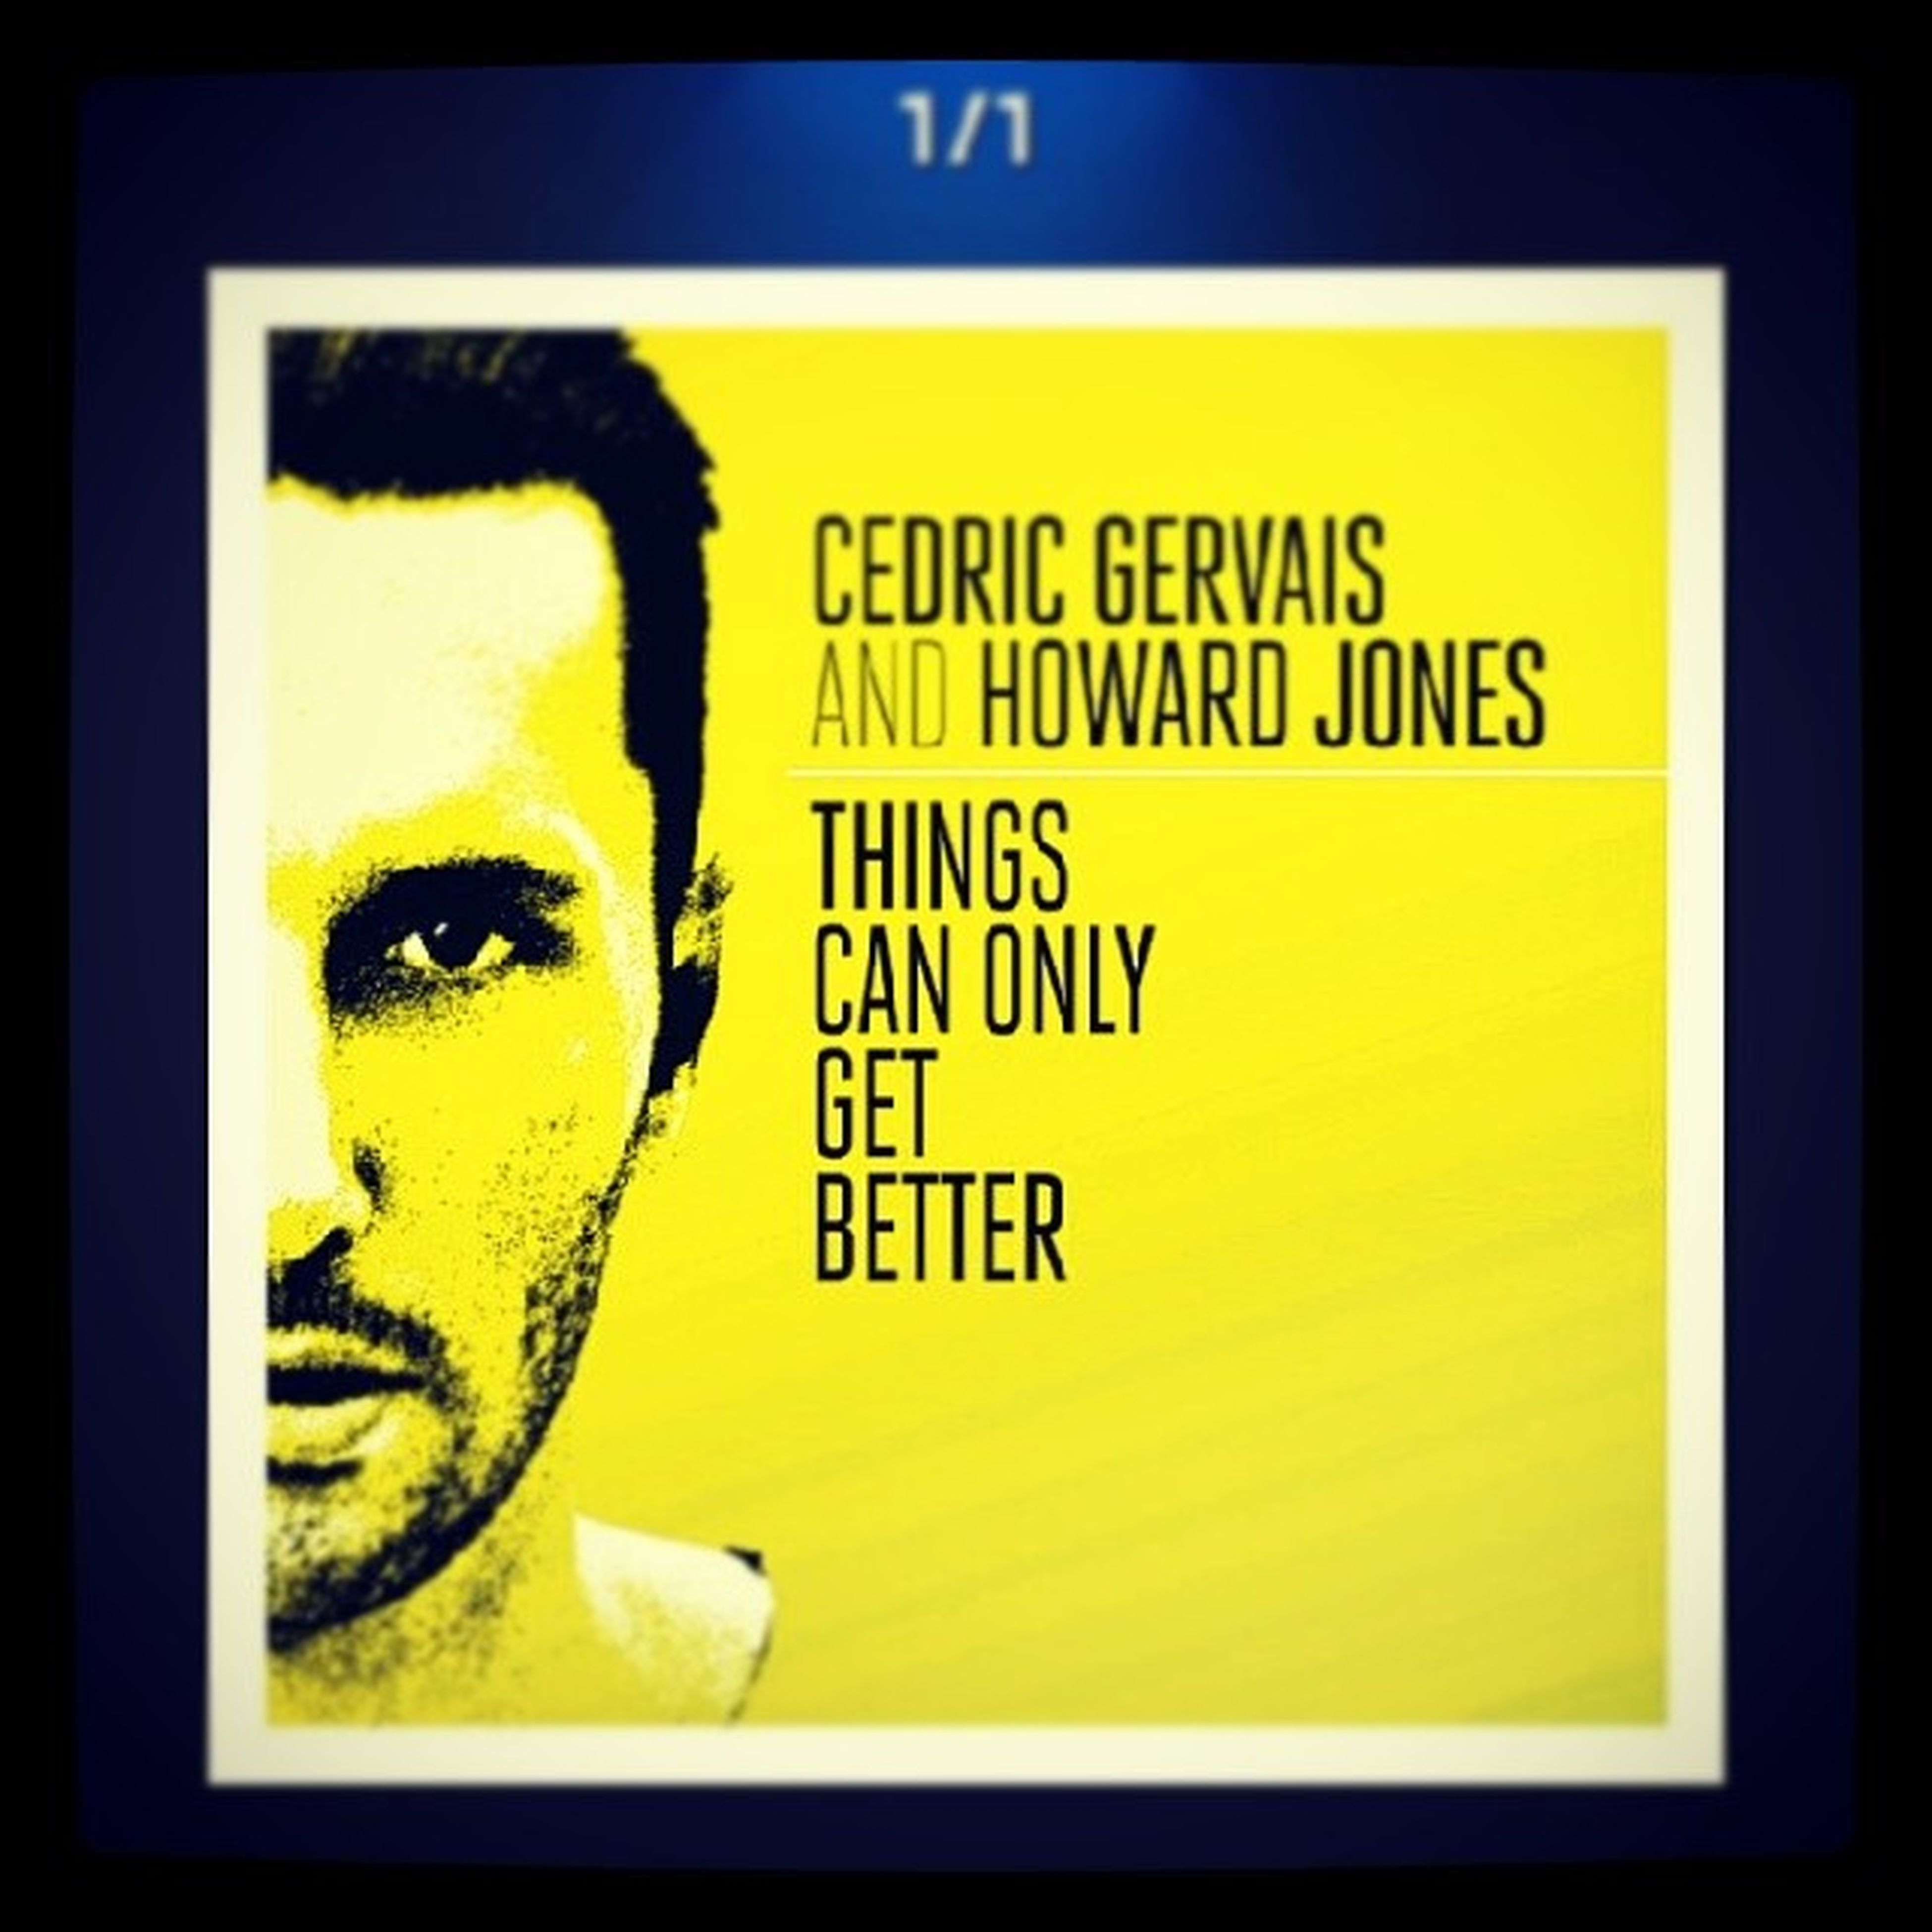 Song of the week: Things Can Only Get Better by Cedric Gervais and Howard Jones. Im going to start posting a song every Sunday describing how the week went. Songsunday Edm Music Goodweek